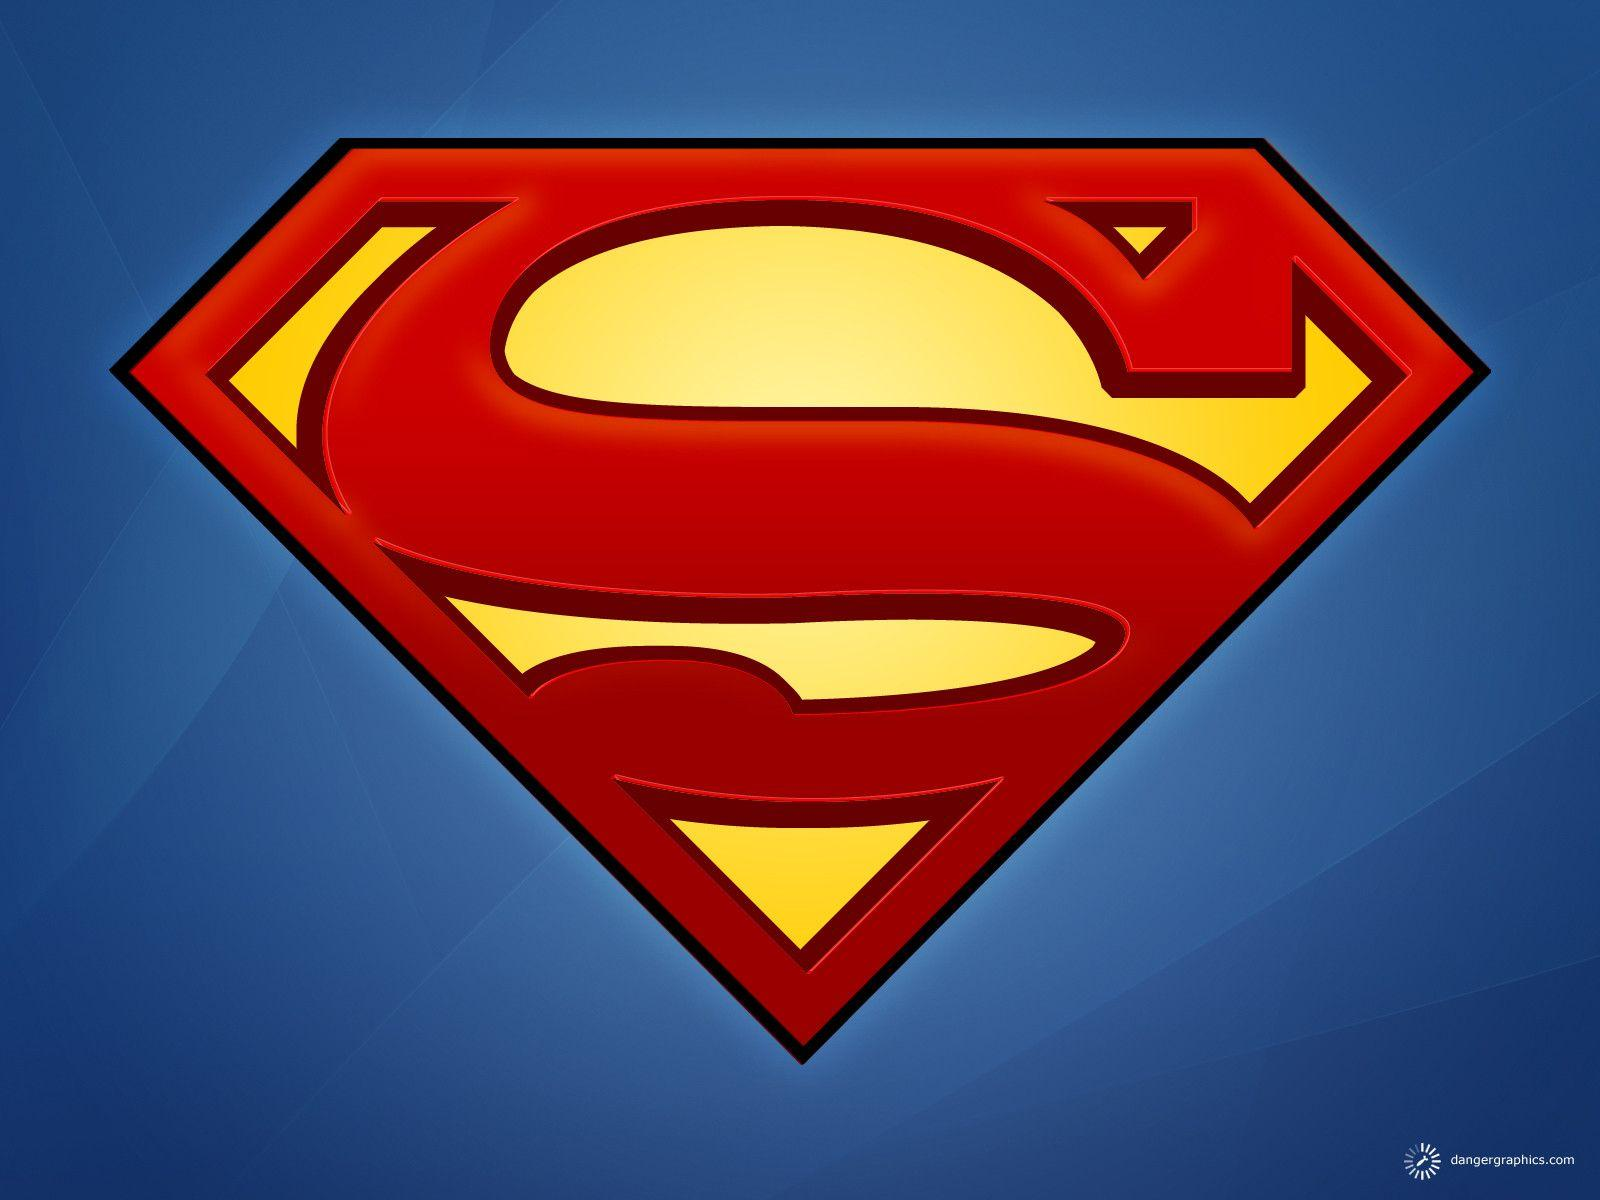 superman logo free wallpaper - photo #19